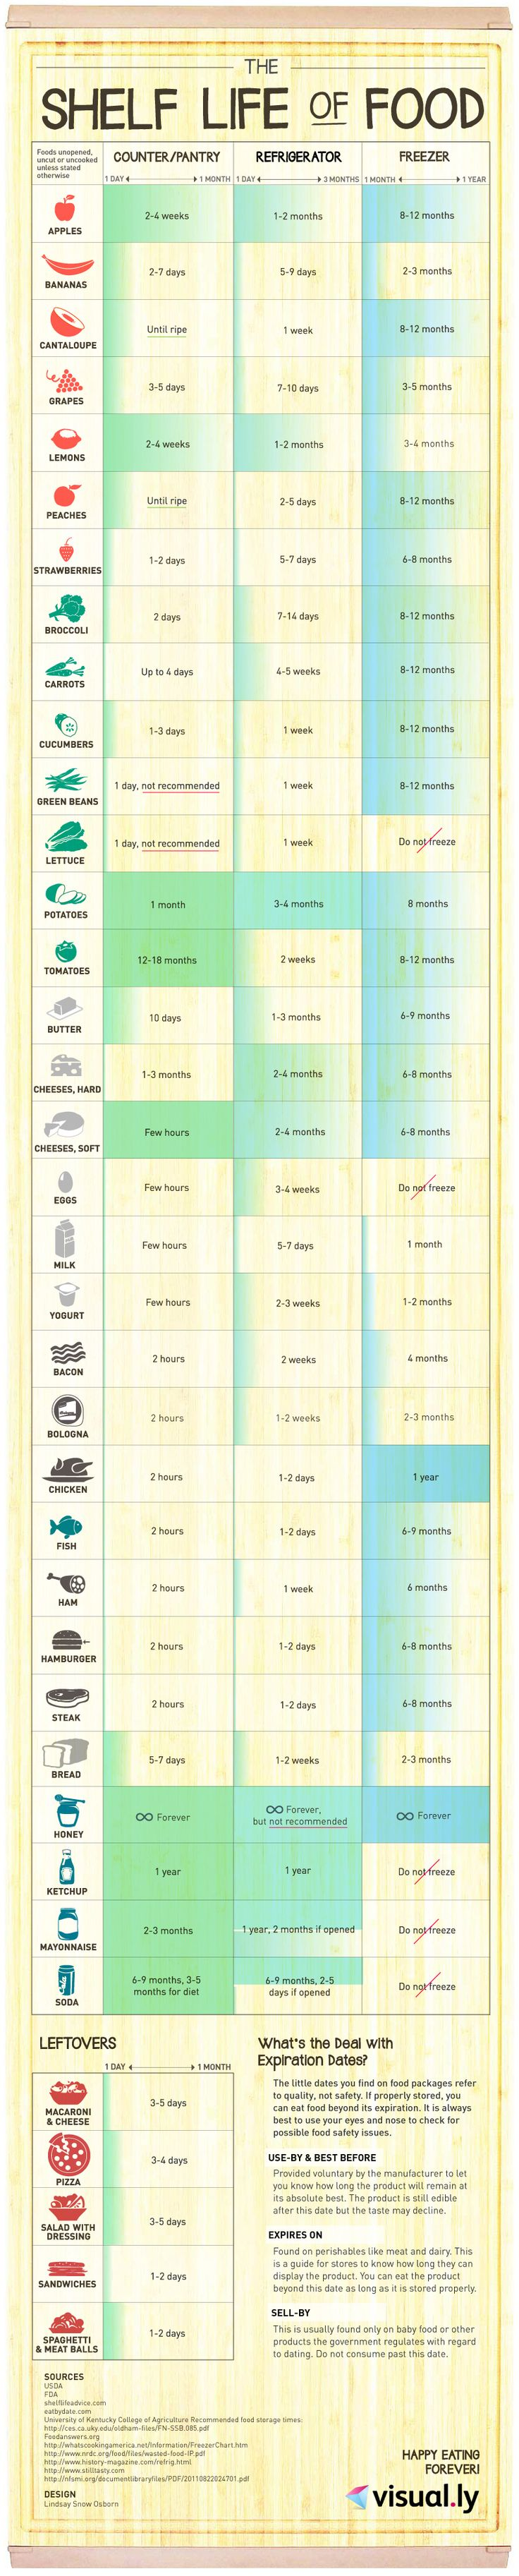 Guide to shelf life for food Useful to remember